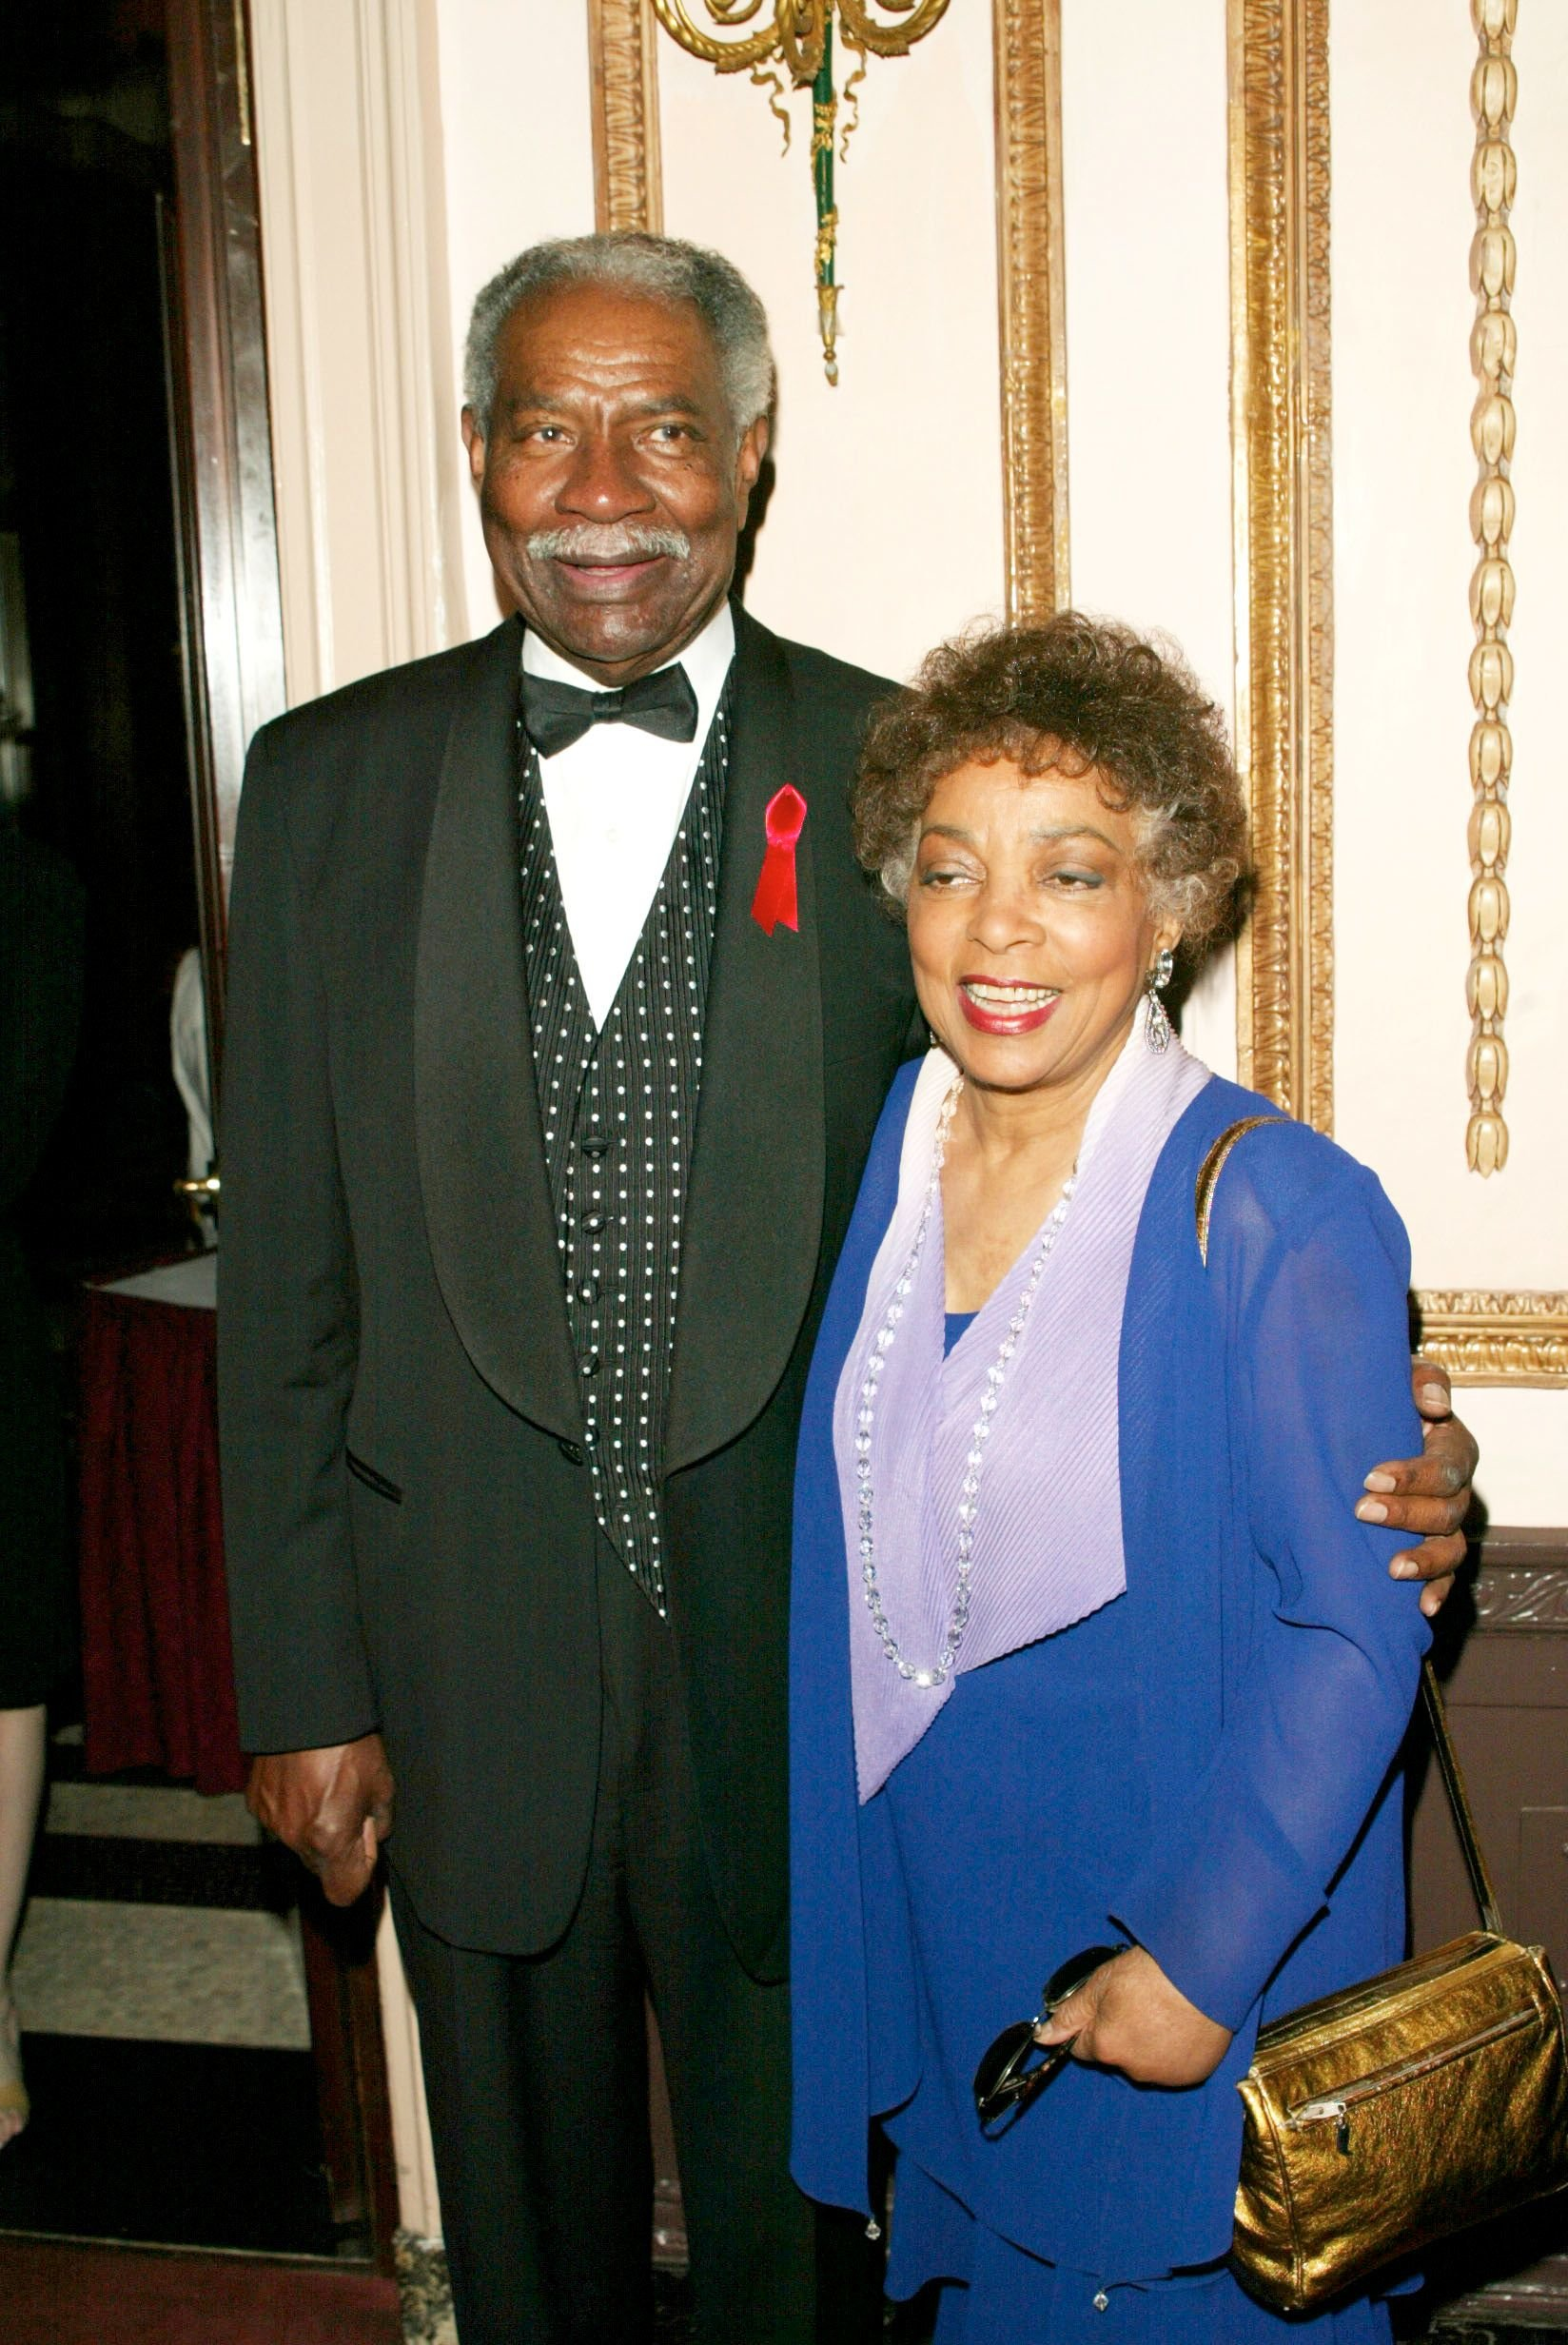 Ossie Davis and Ruby Dee at the 3rd Annual Directors Guild Of America Honors at the Waldorf-Astoria in New York City on June 9, 2002 | Photo: Getty Images